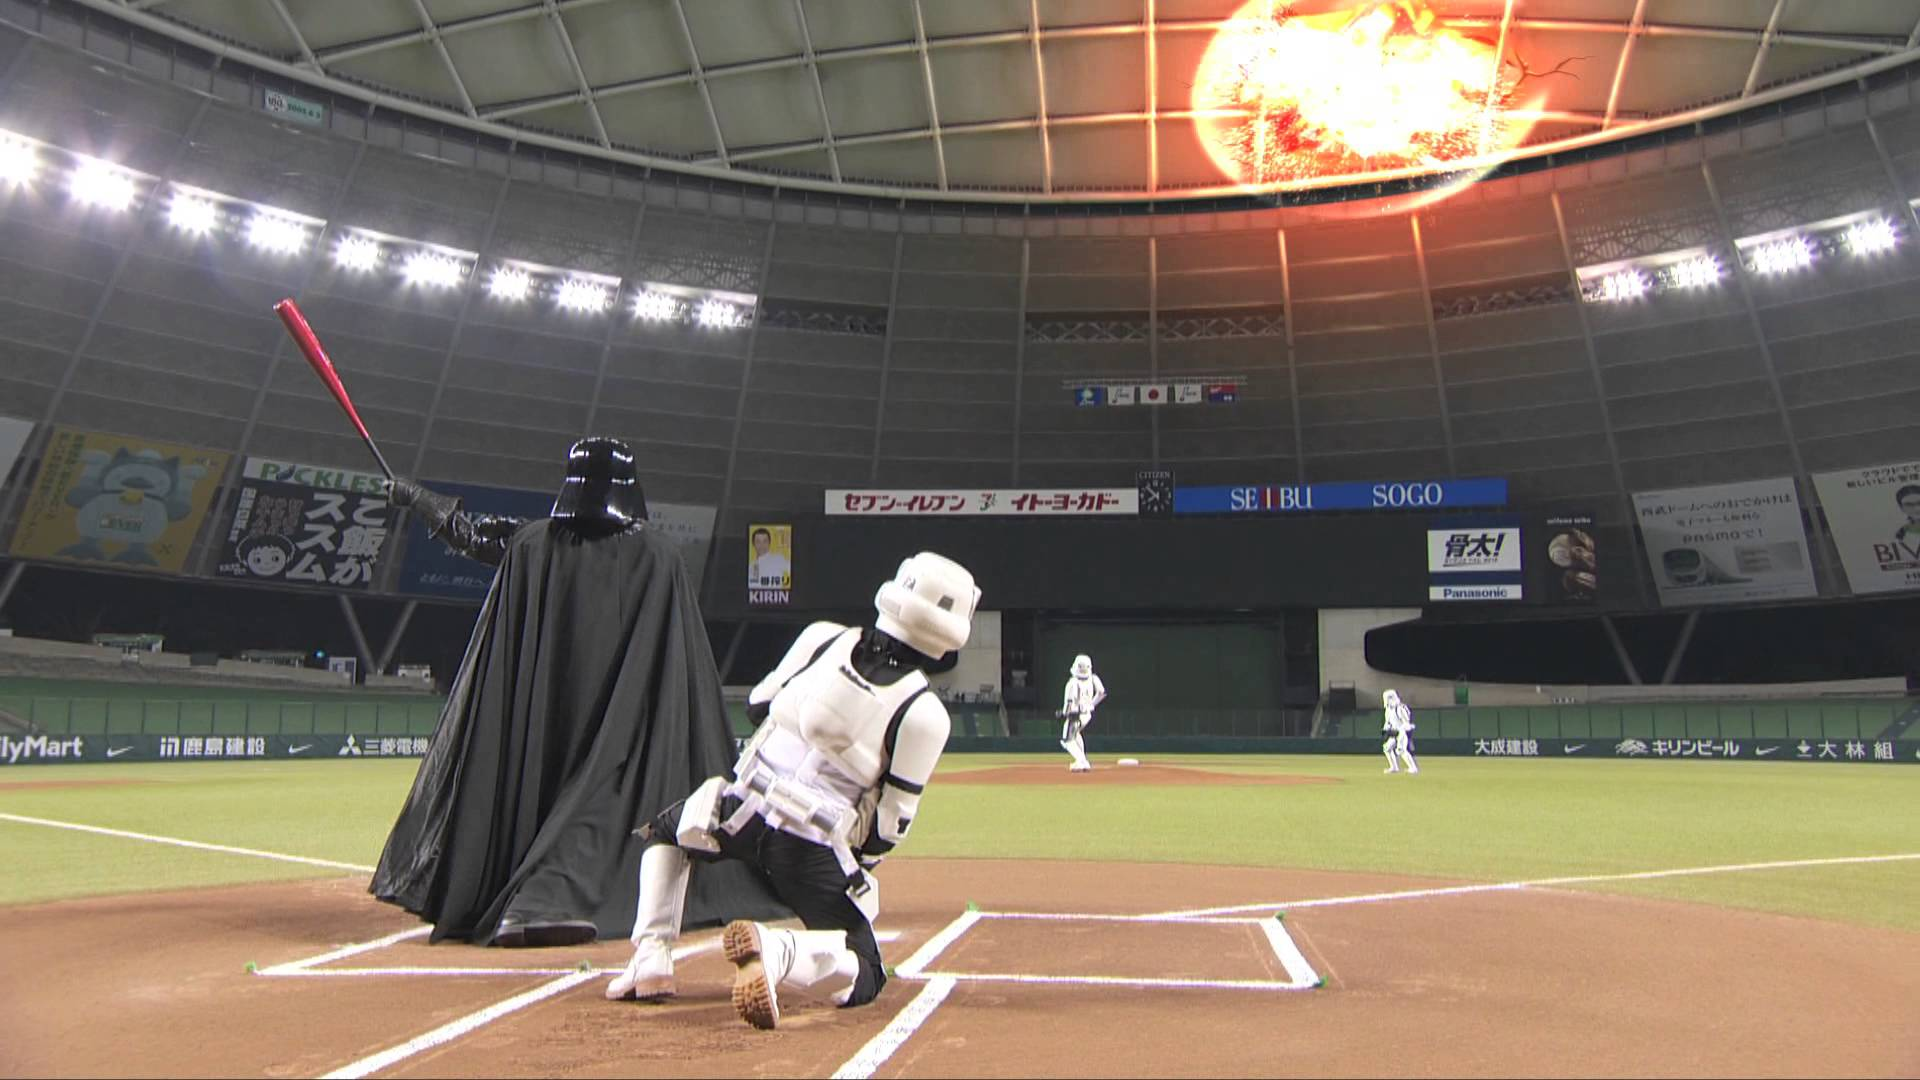 Star Wars Darth Vader BaseBall